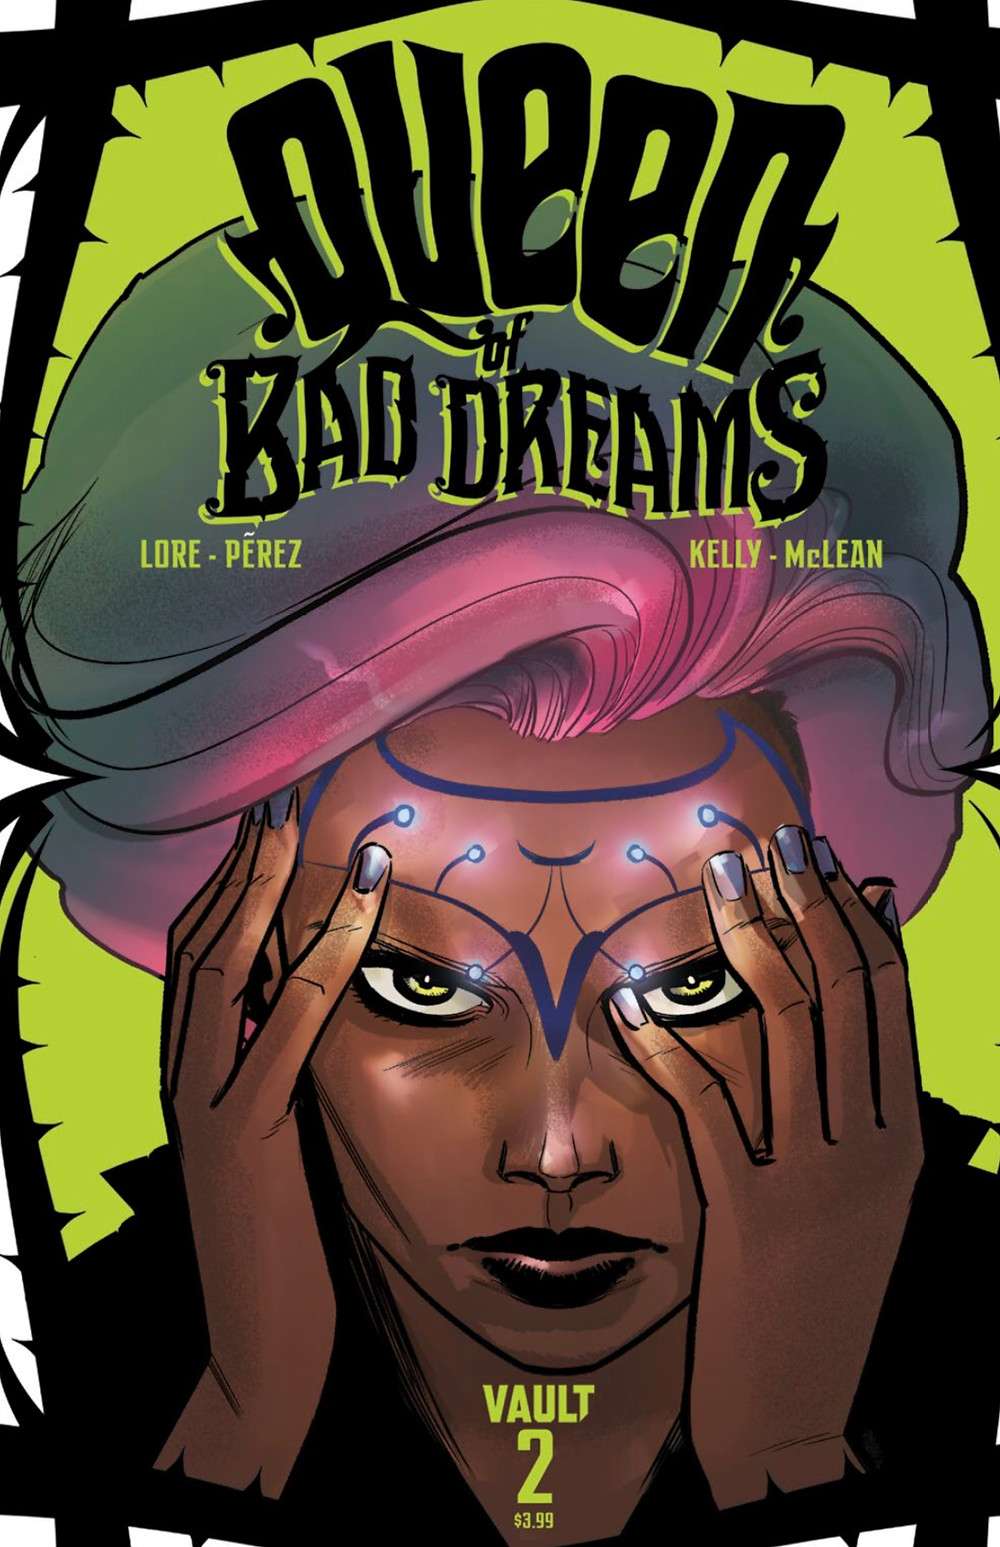 Queen of Bad Dreams, issue #2, cover, Vault Comics, Lore/Pérez